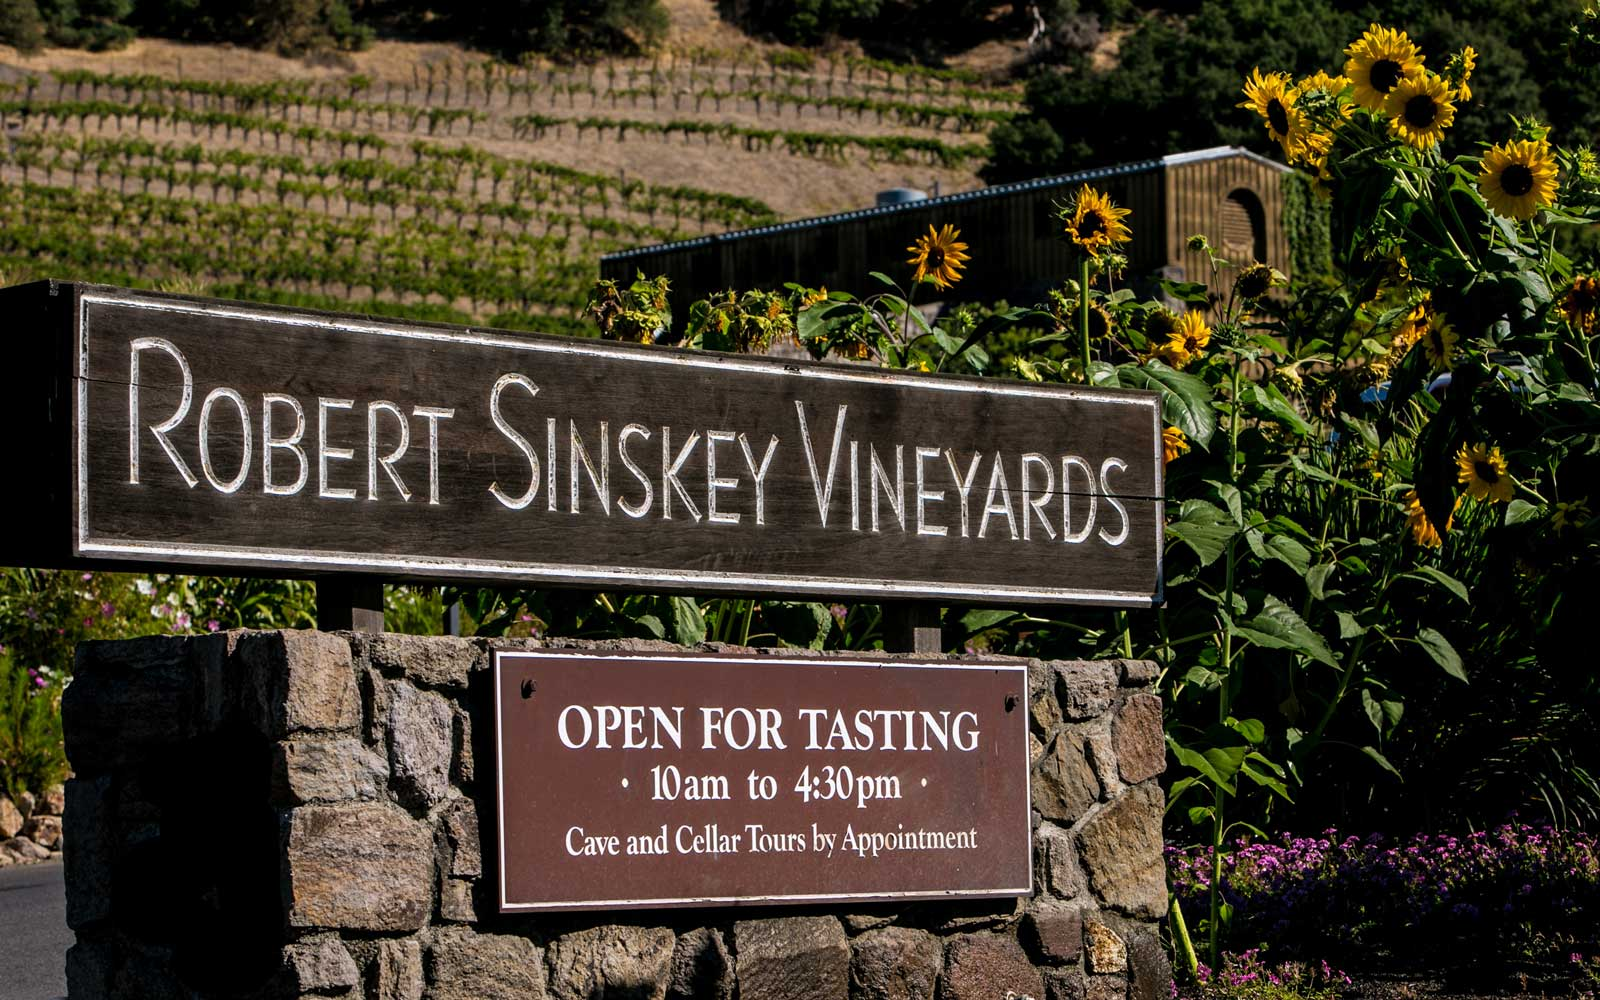 Robert Sinskey Vineyard